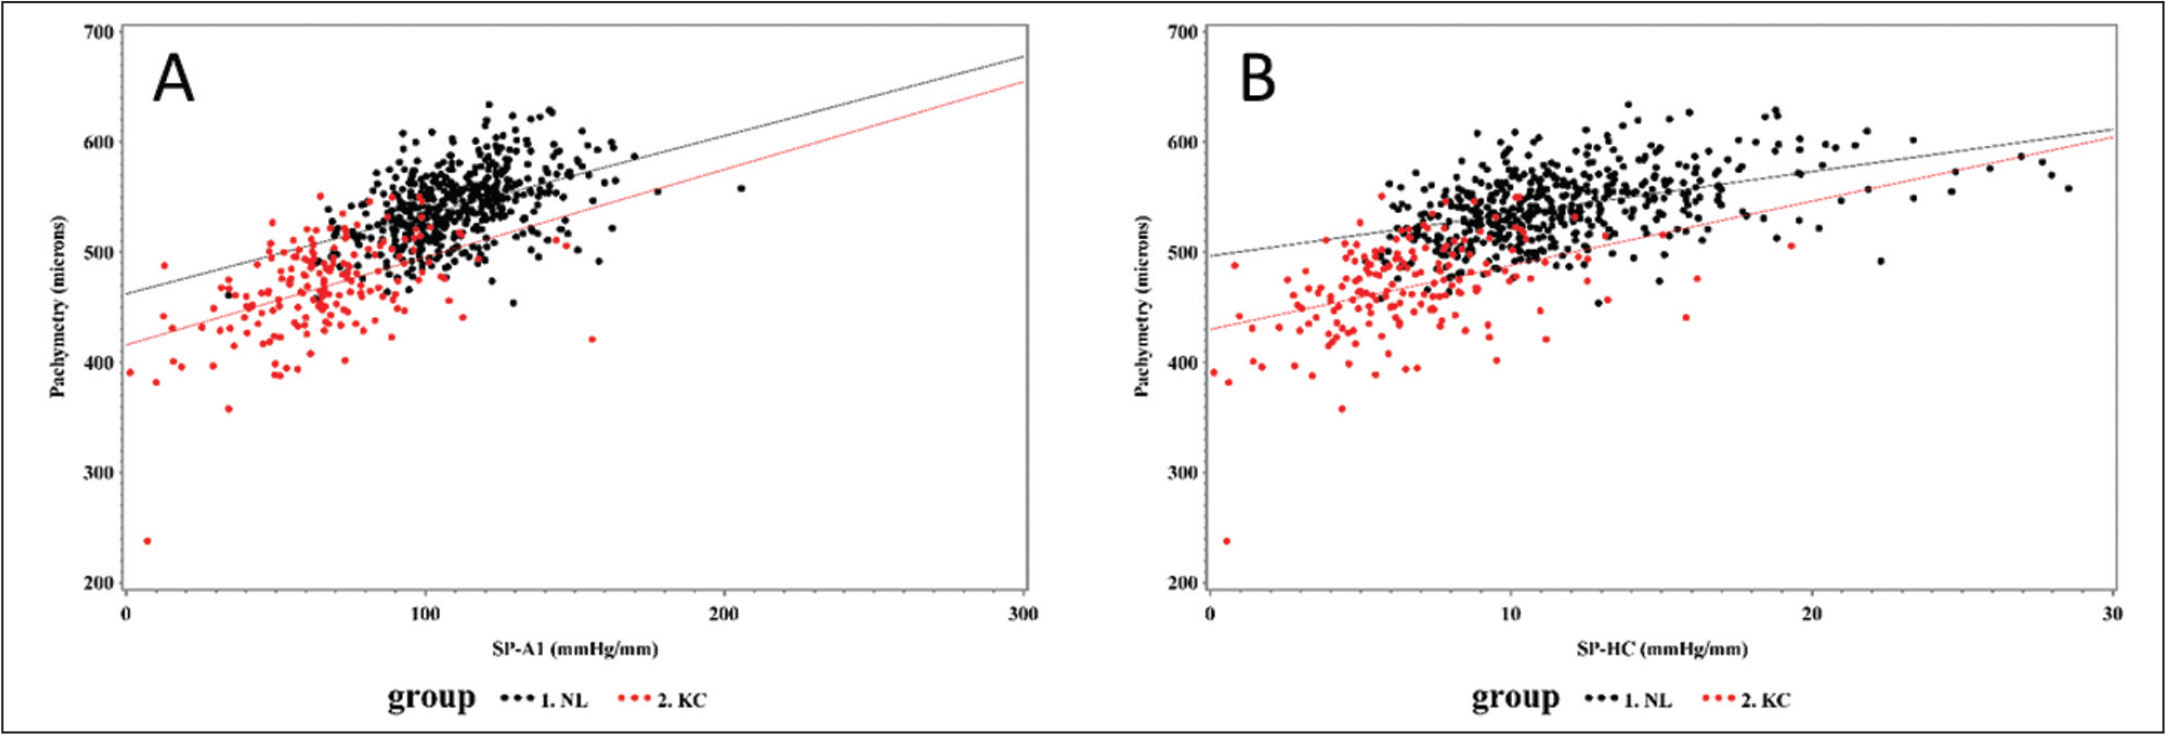 Regression analysis of pachymetry vs (A) stiffness parameter applanation 1 (SP-A1) and (B) stiffness parameter highest concavity (SP-HC), both showing that thicker corneas tend to be stiffer in both normal (black) and keratoconic (red) eyes. Note that SP-A1 shows greater separation between keratoconic (KC) eyes and normal (NL) eyes.